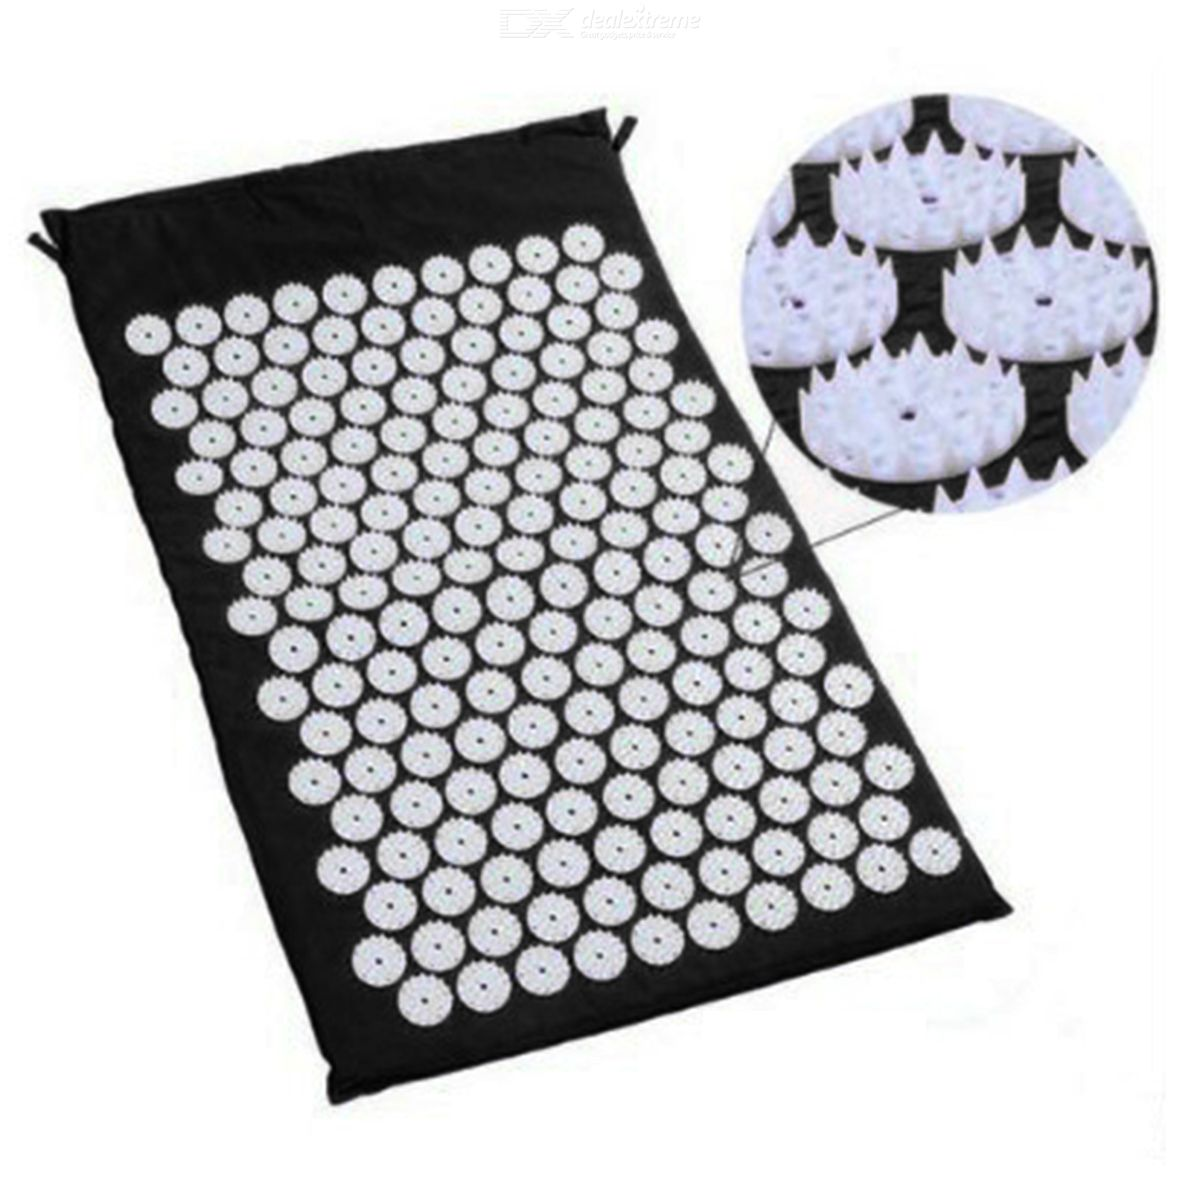 Lotus Acupressure Mat for Relieving Stress Pain, Massage Cushion for Back Neck Hip Pain with Storage Bag Black